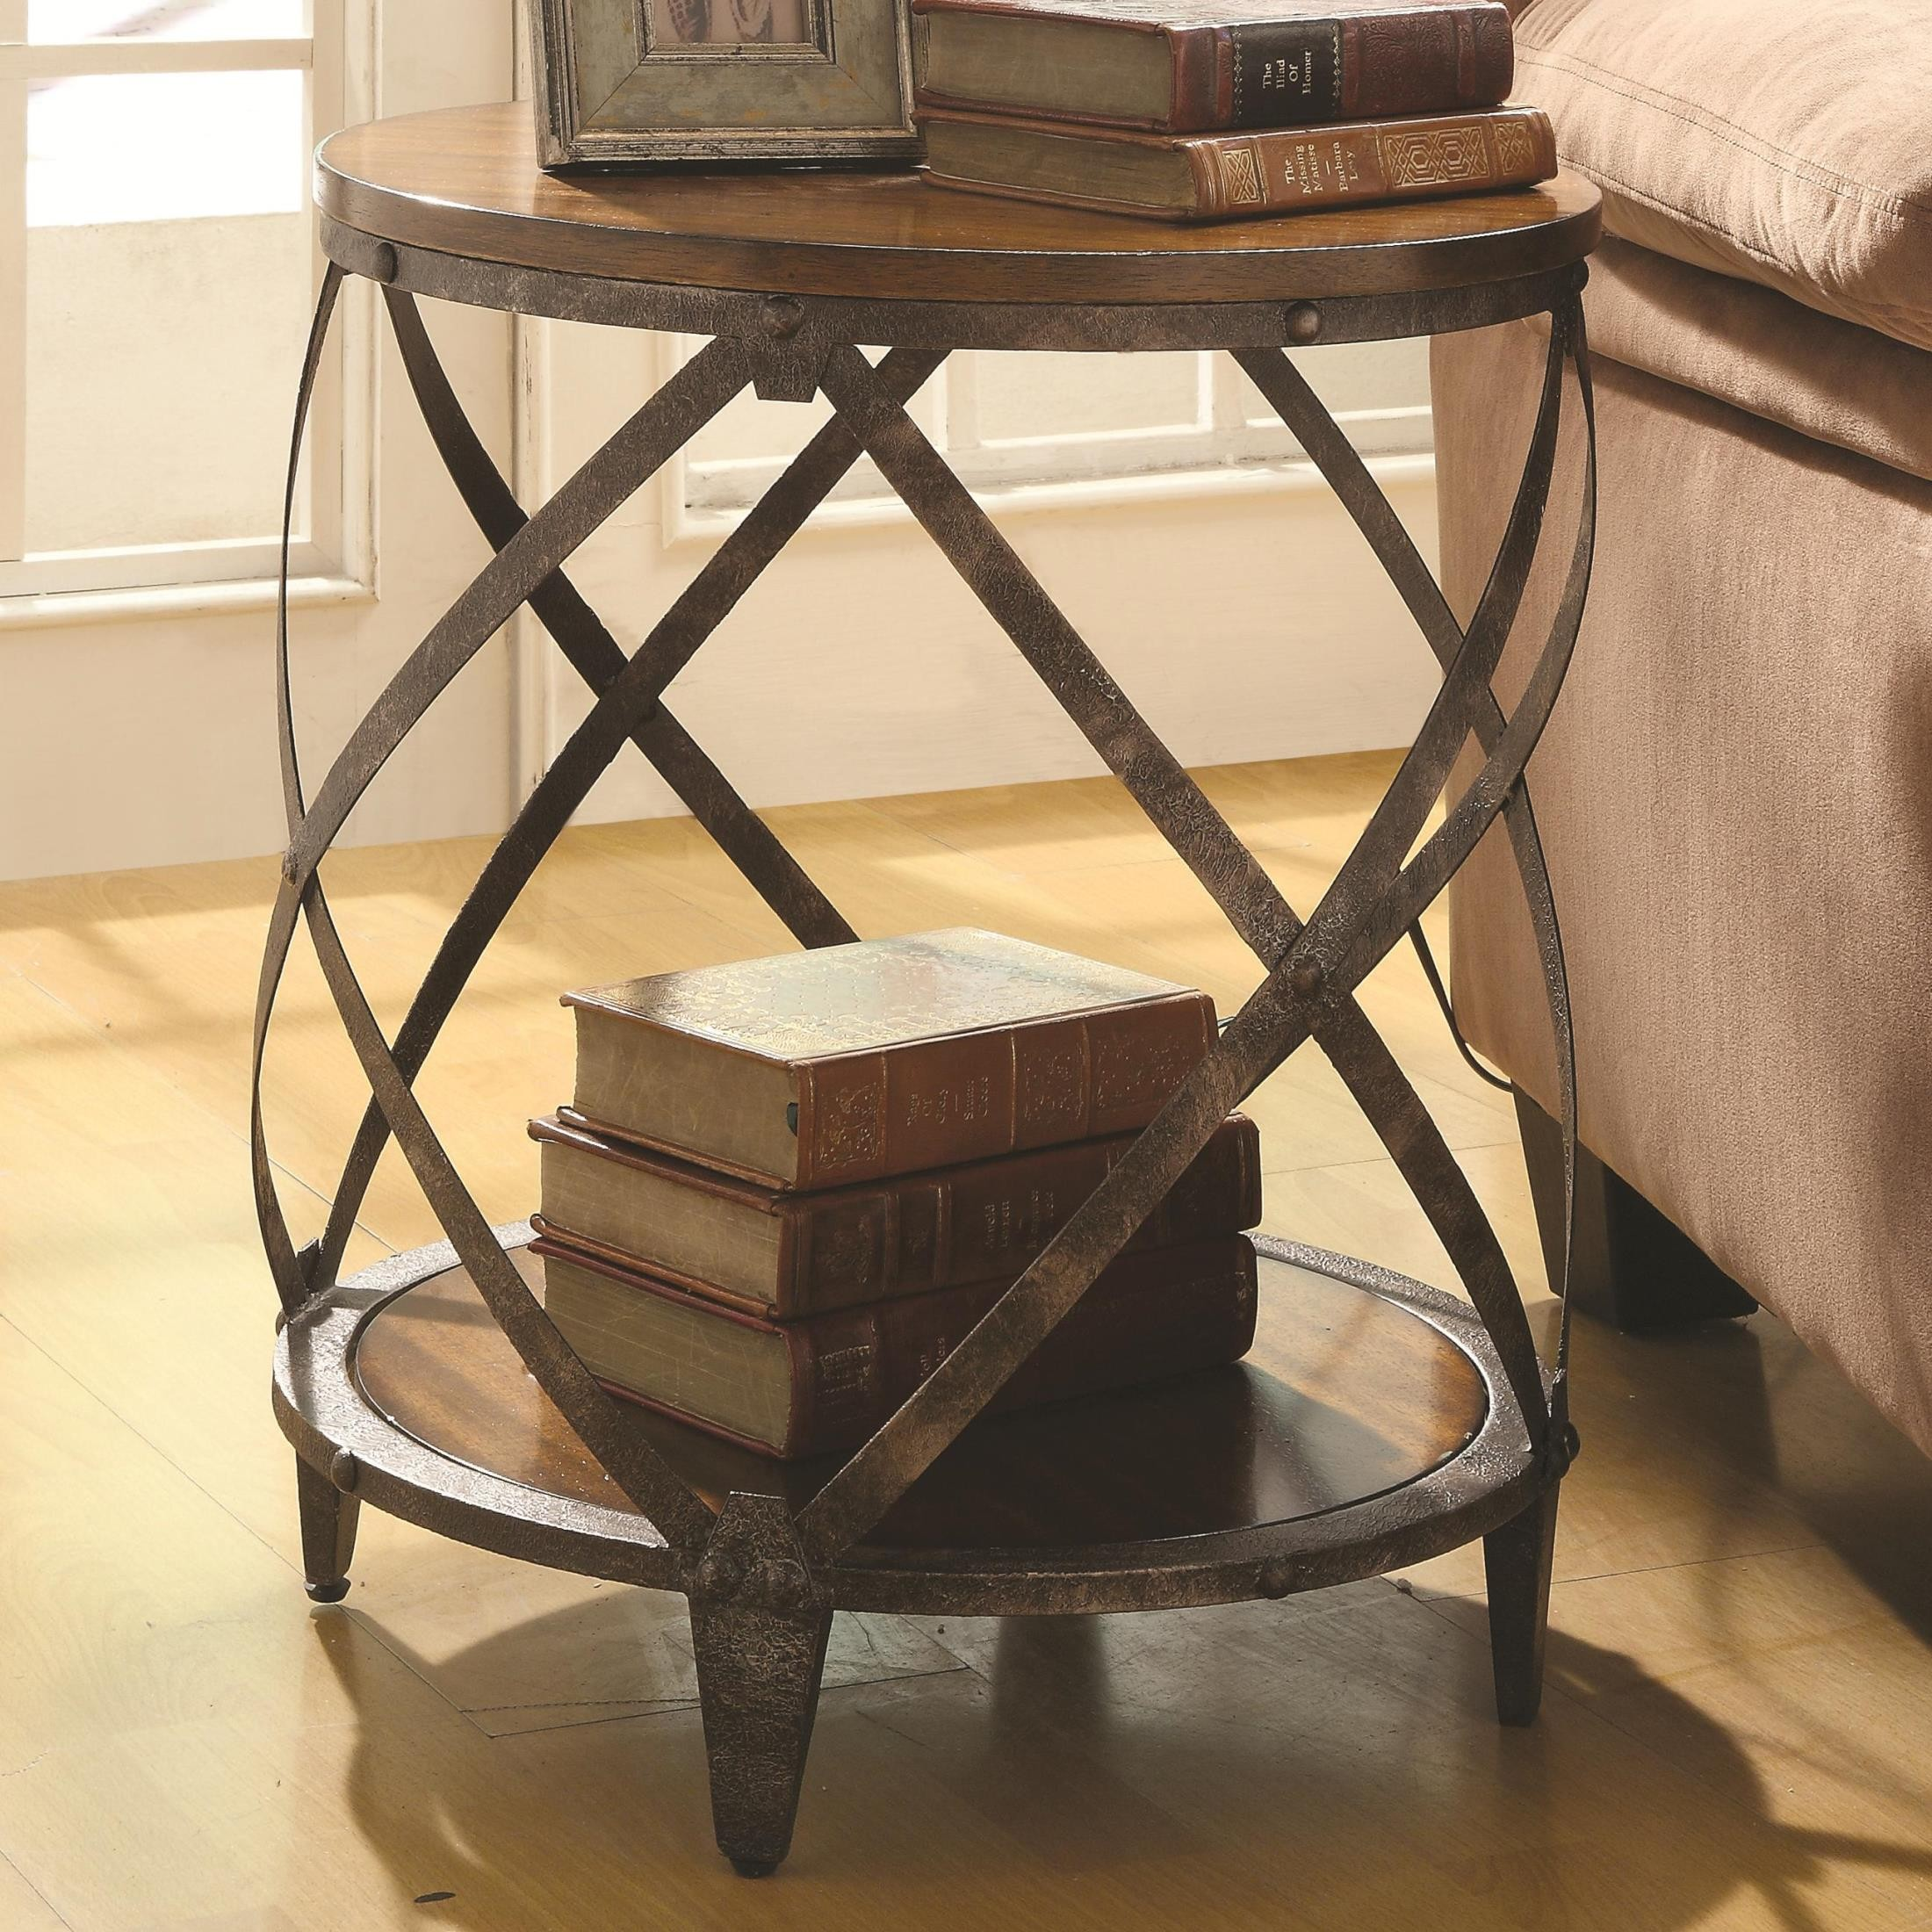 Occasional Tables: 903326 Accent Table From Coaster (903326)